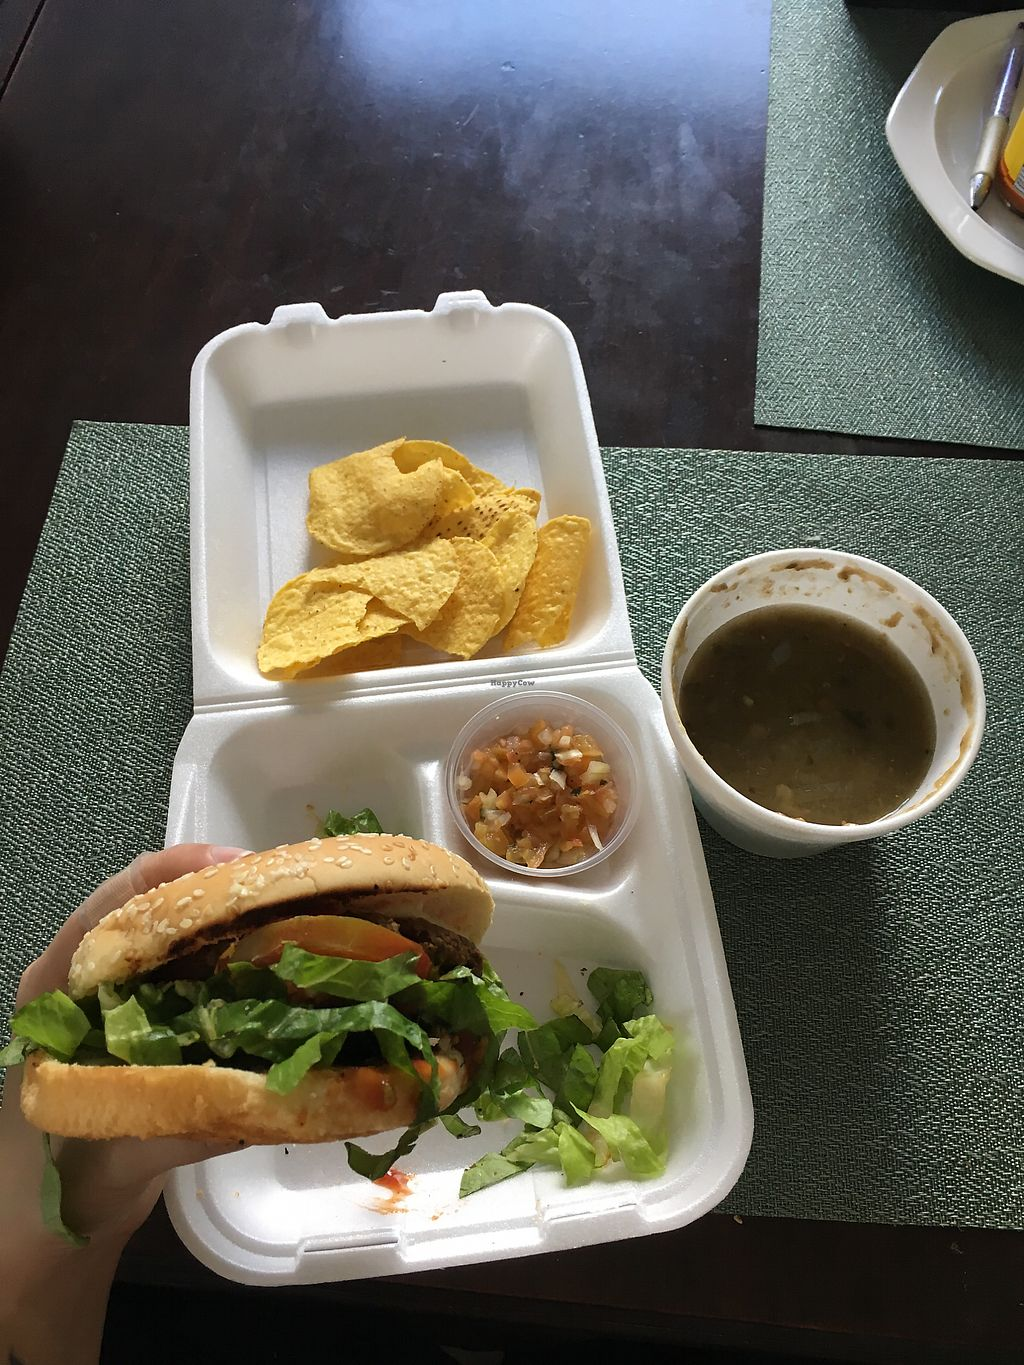 """Photo of Natural Spice  by <a href=""""/members/profile/CrisyRivera"""">CrisyRivera</a> <br/>Dilvery , hamburger and chips <br/> November 13, 2017  - <a href='/contact/abuse/image/84776/325031'>Report</a>"""